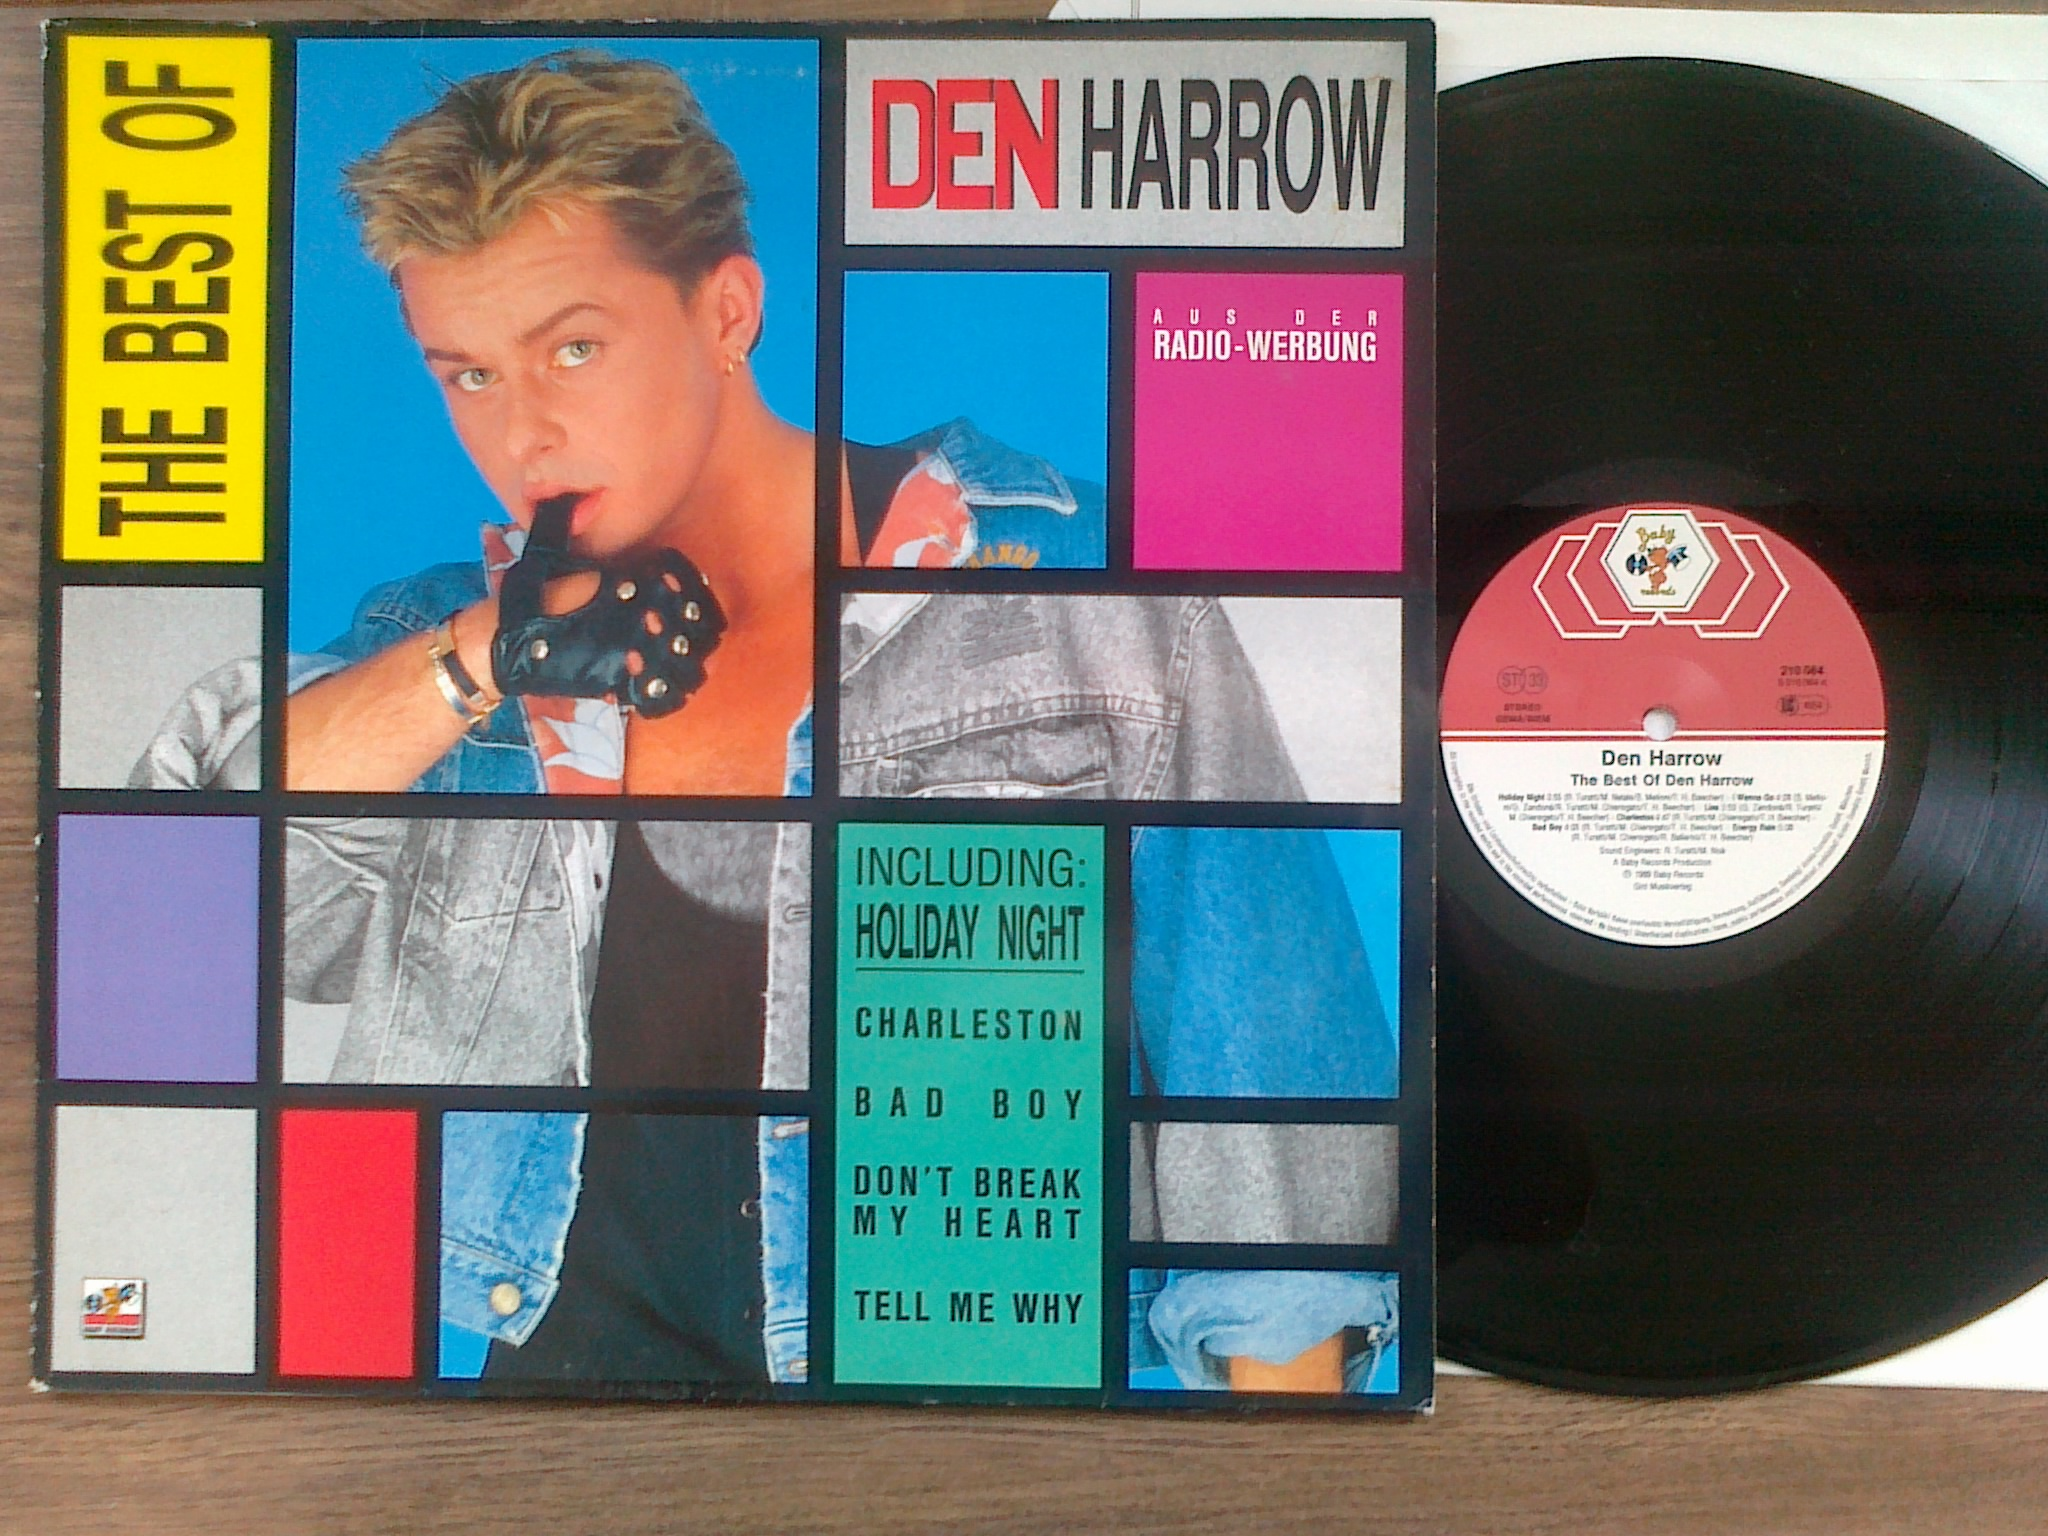 Den Harrow - The Best LP